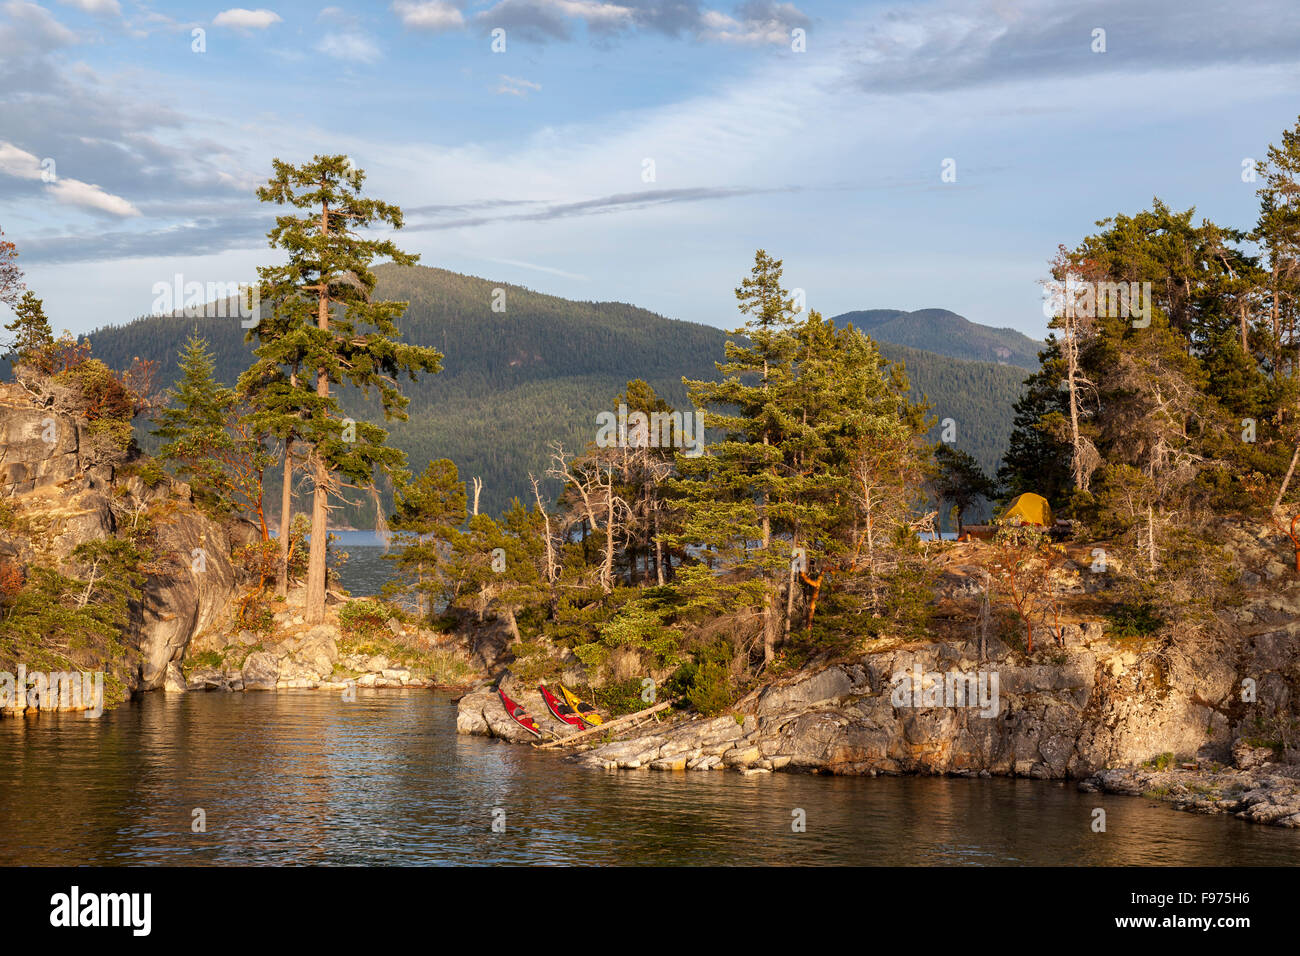 High tide separates East Curme from West Curme Island in Desolation Sound Marine Park. British Columbia, Canada. - Stock Image